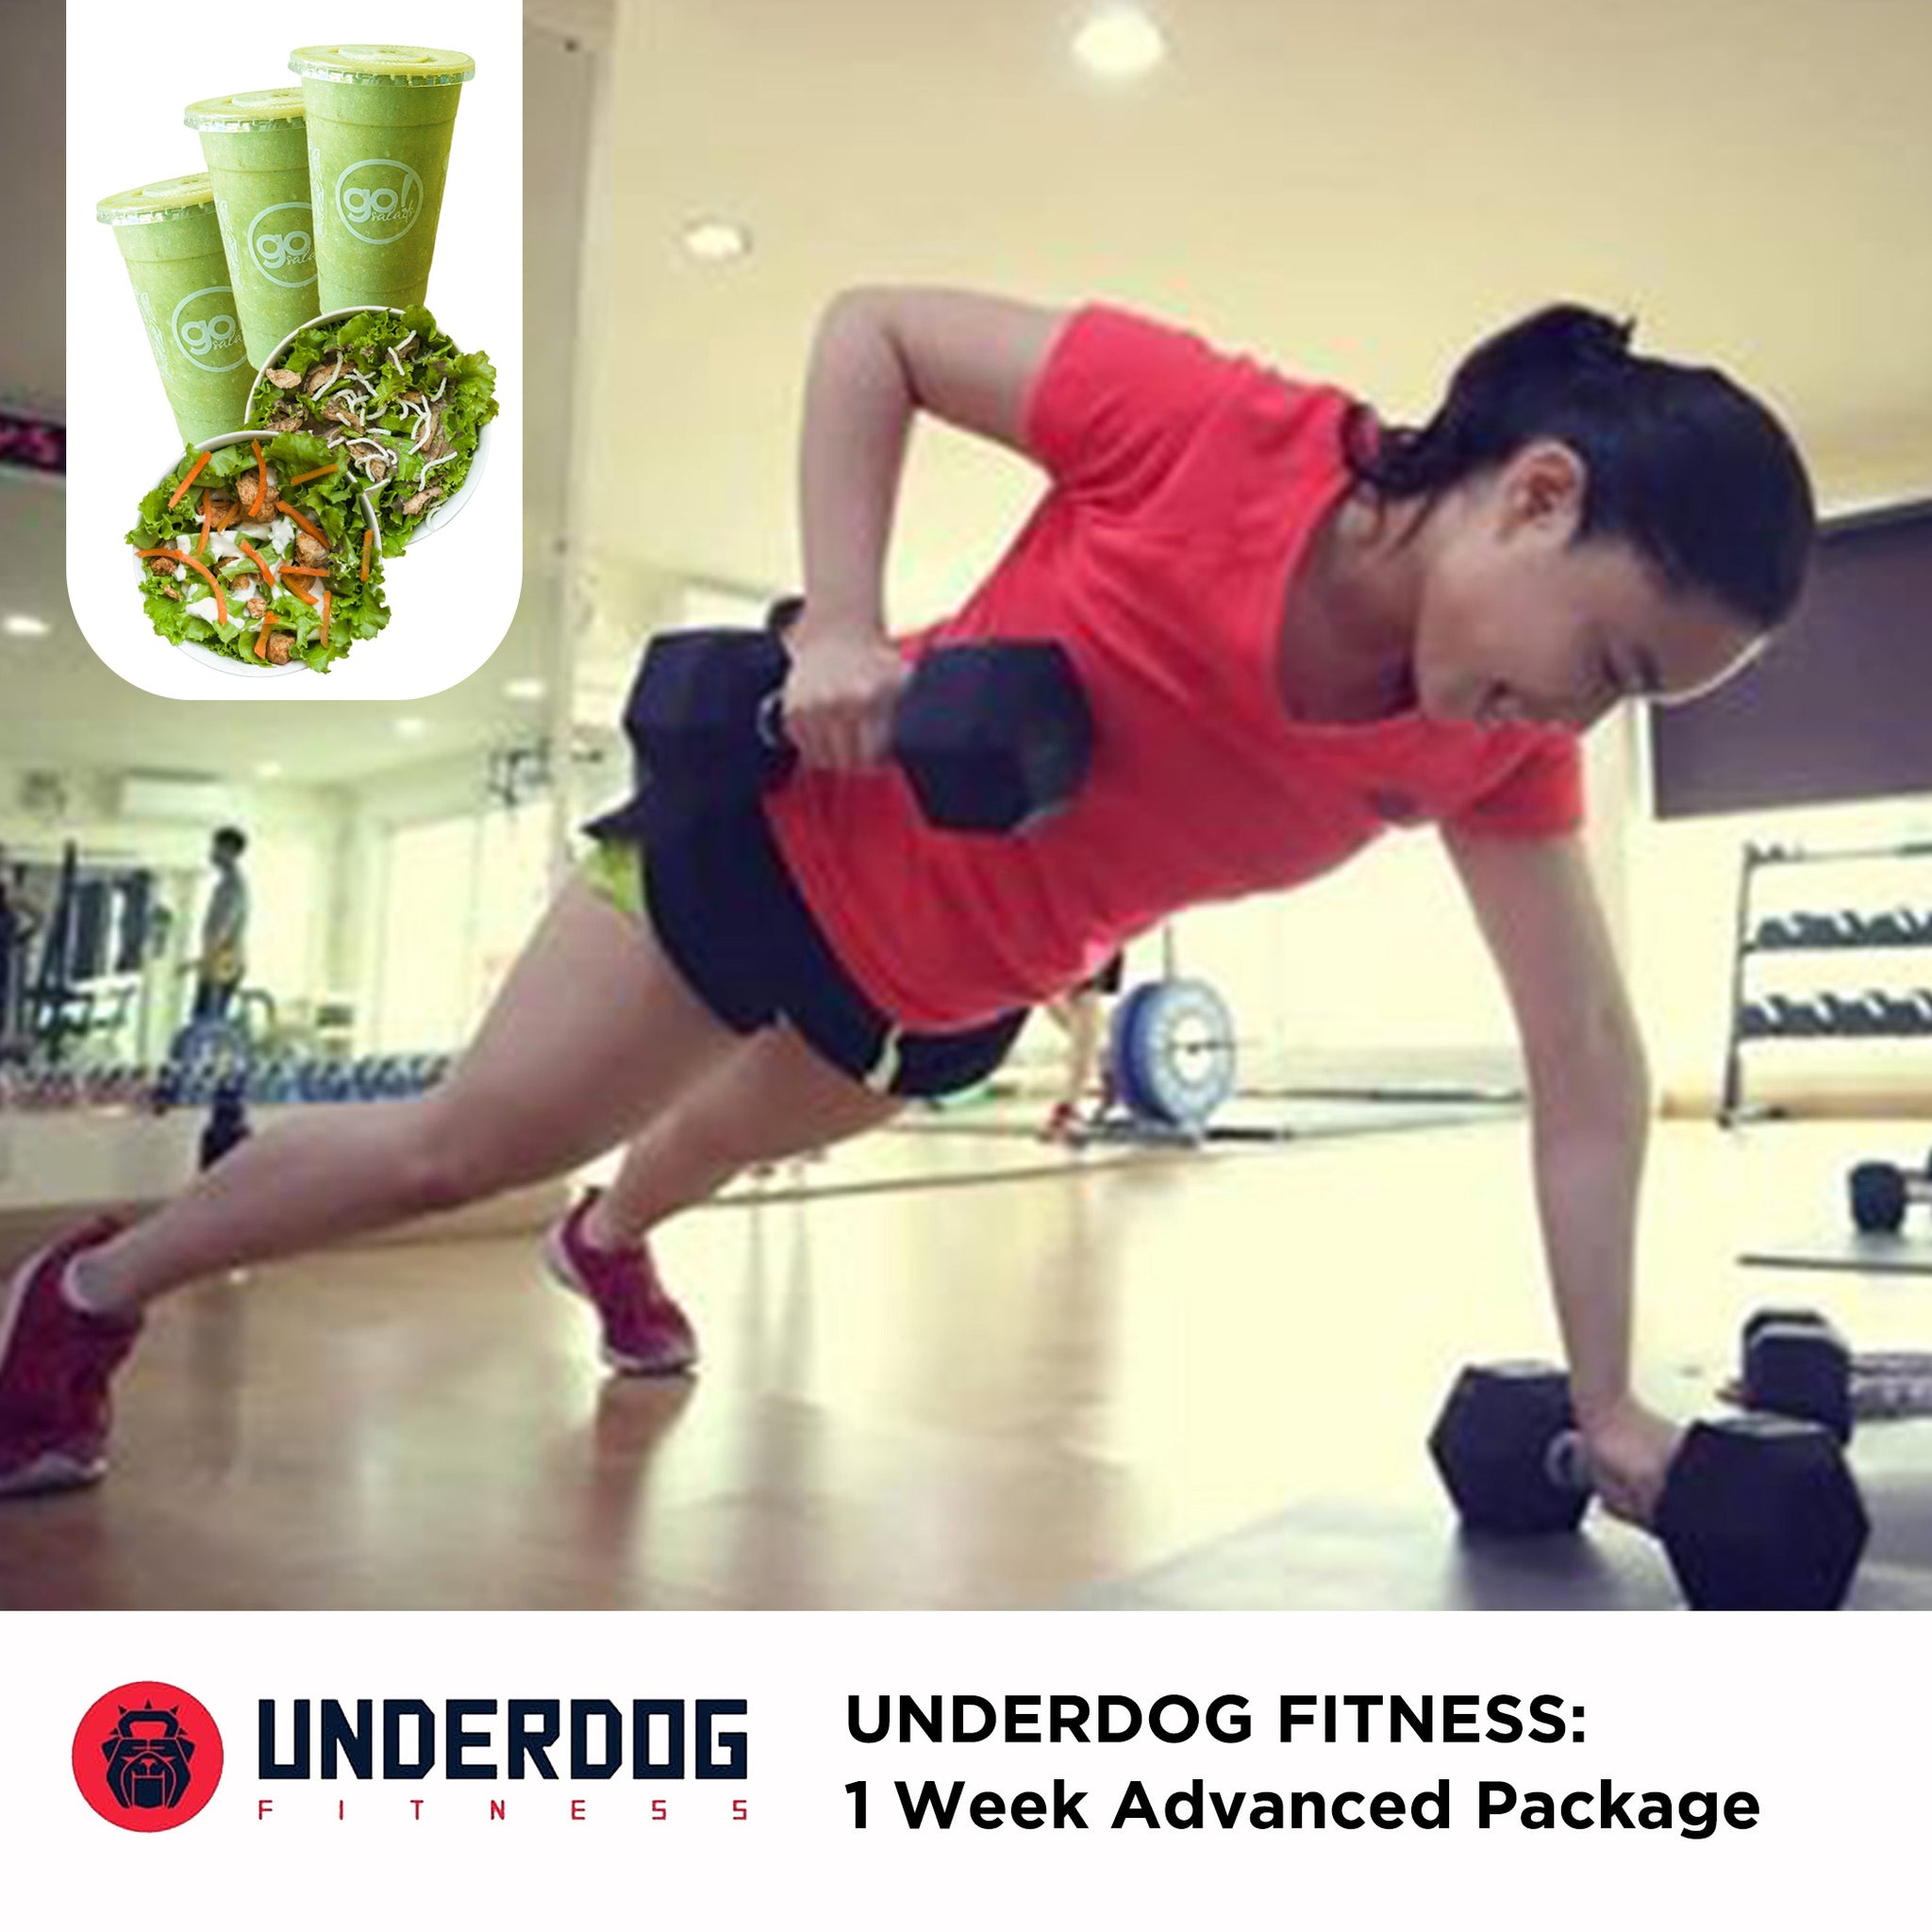 P2,399 worth of 3 personalized work-out programs and unlimited 1 week consultation with FREE delivery of 3 Smoothies and 2 Farm Fresh Salads - Go! Salads Grocer